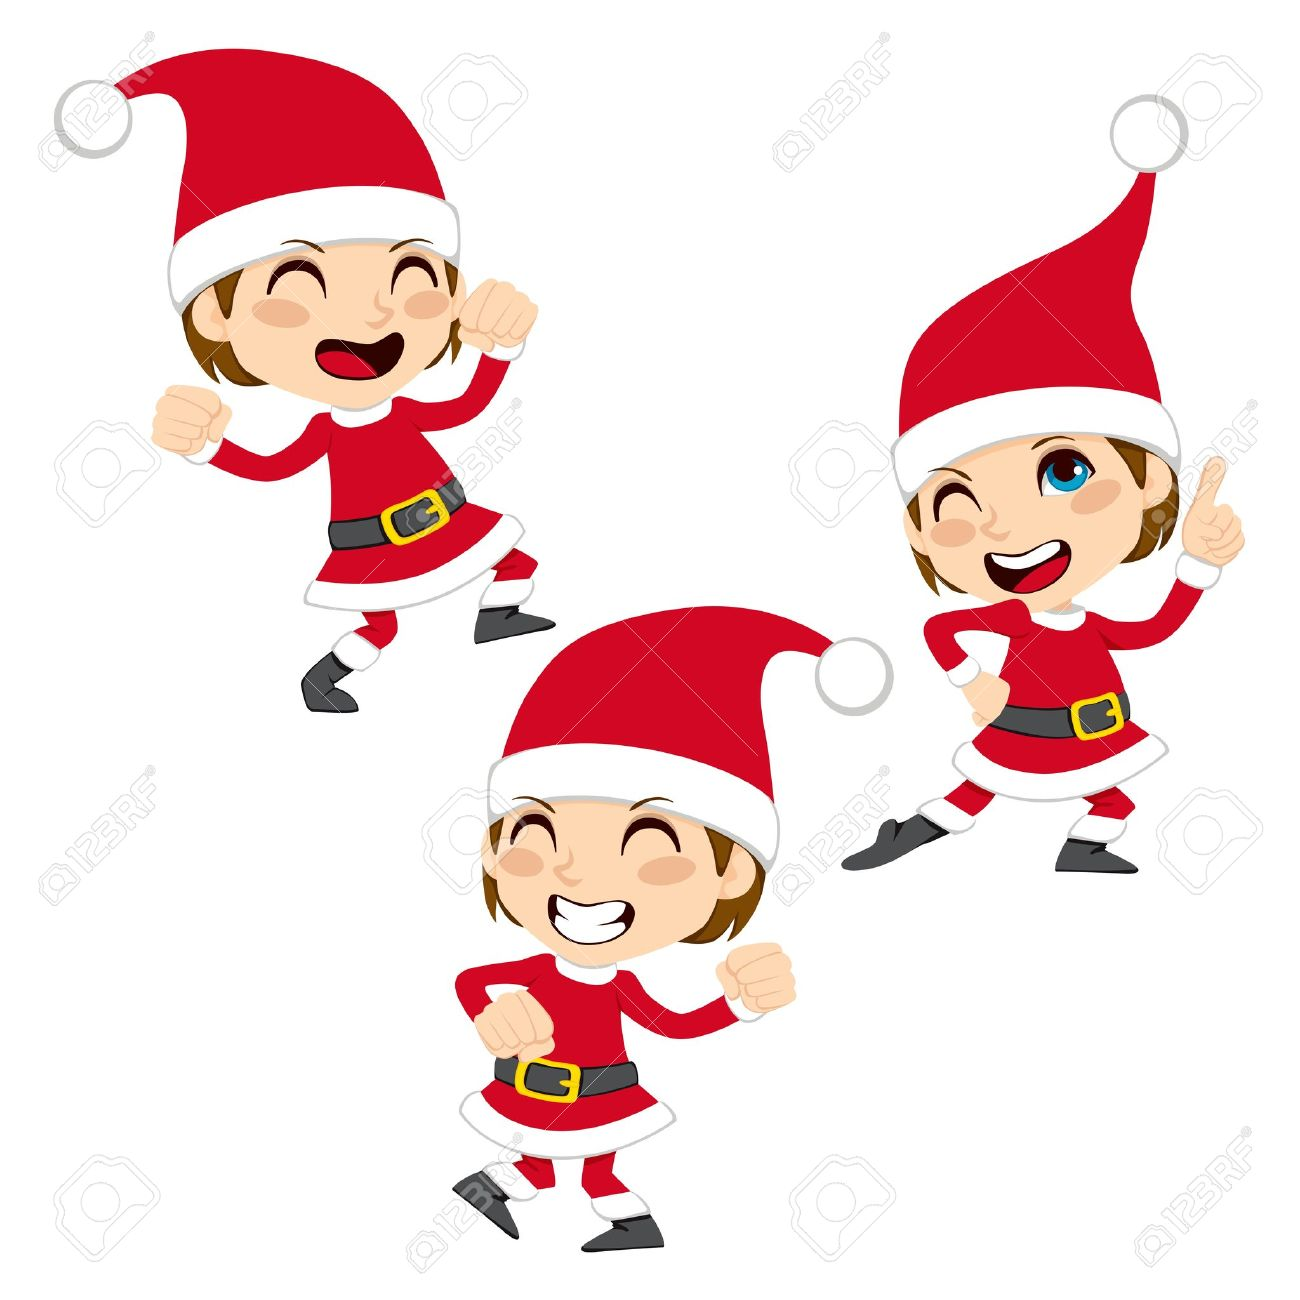 Christmas Dancing Santa.Cute Little Boy Happy Dancing Santa Claus Christmas Dance